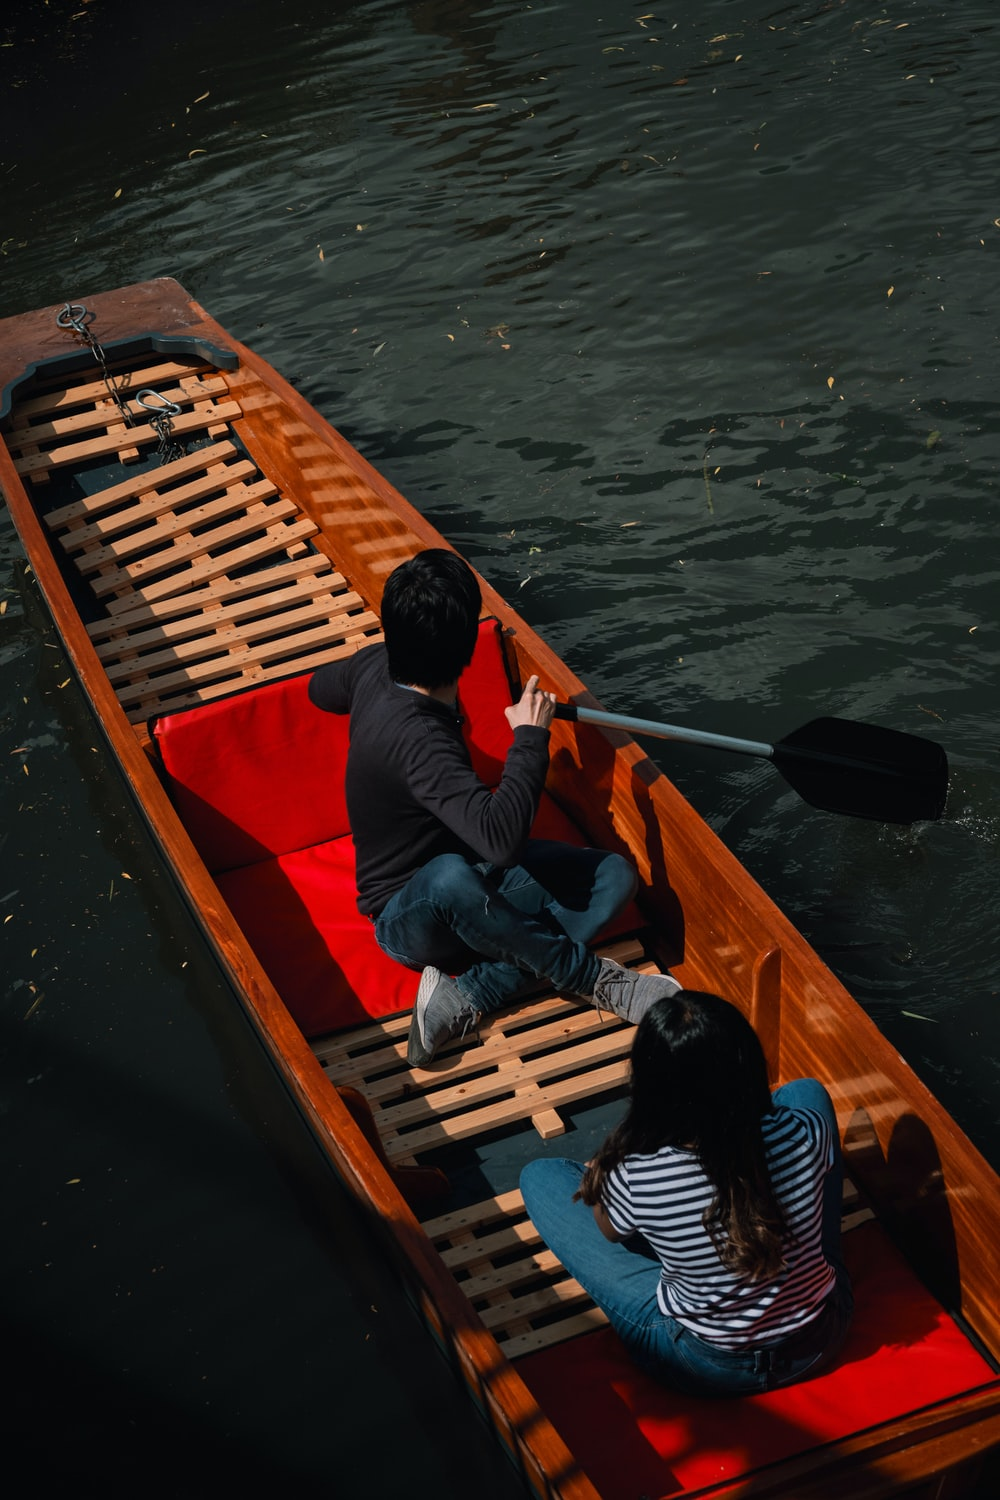 man in red shirt and blue denim jeans sitting on brown wooden boat